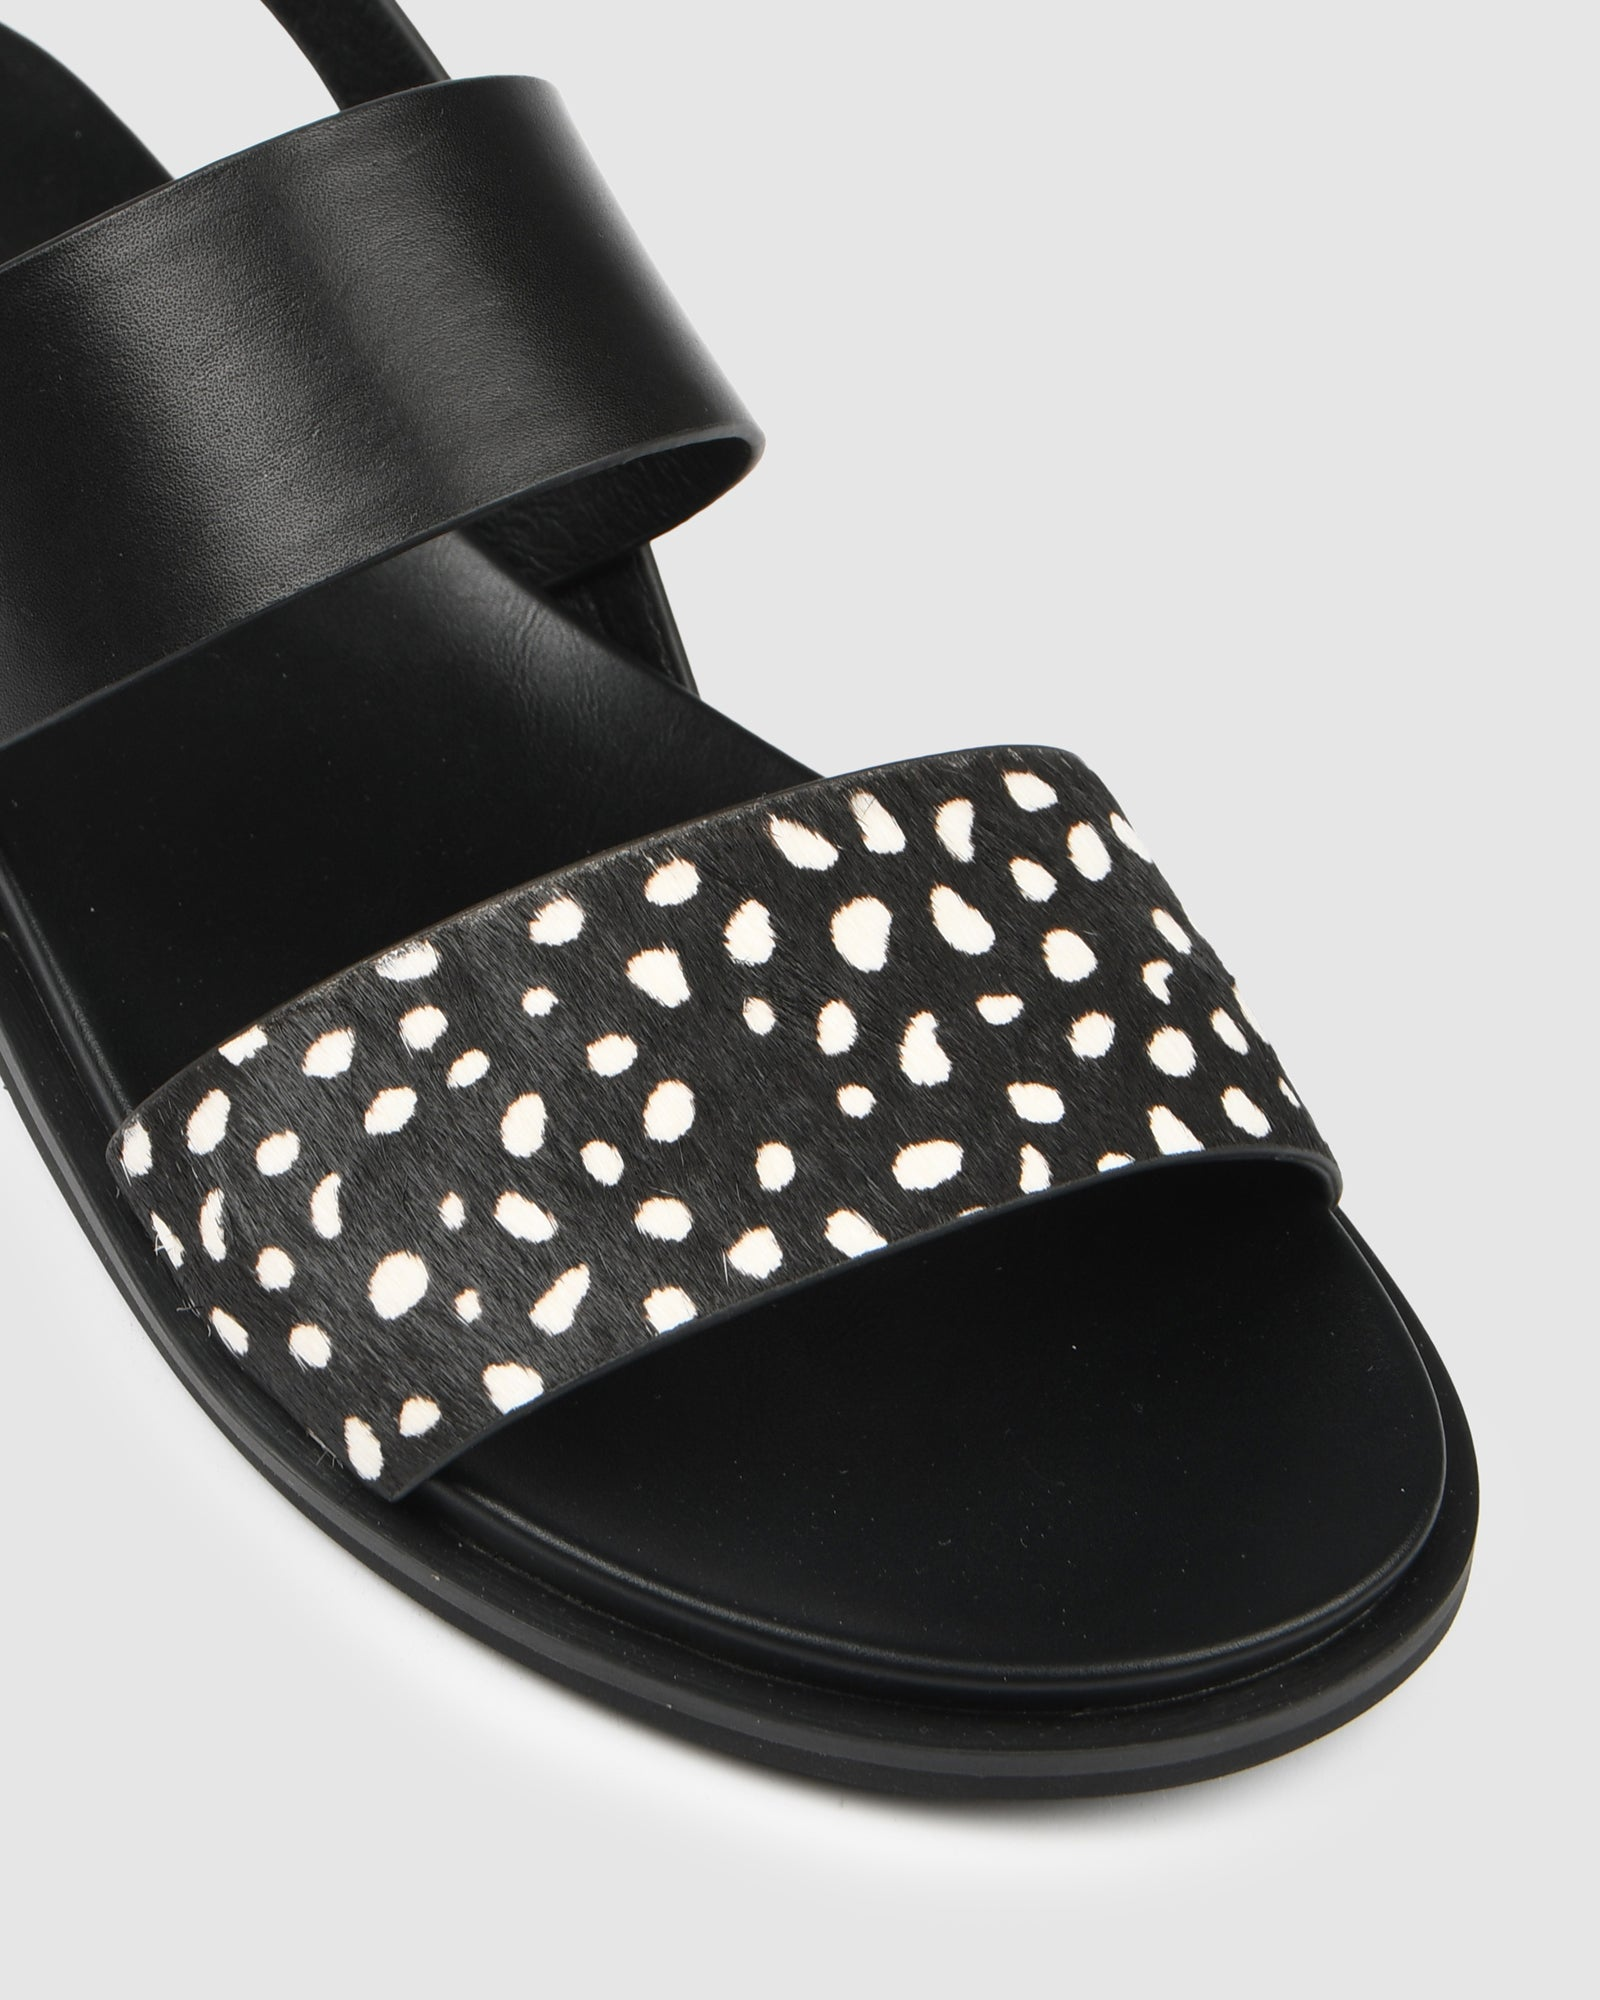 BRYDIE FLAT SANDALS BLACK MULTI